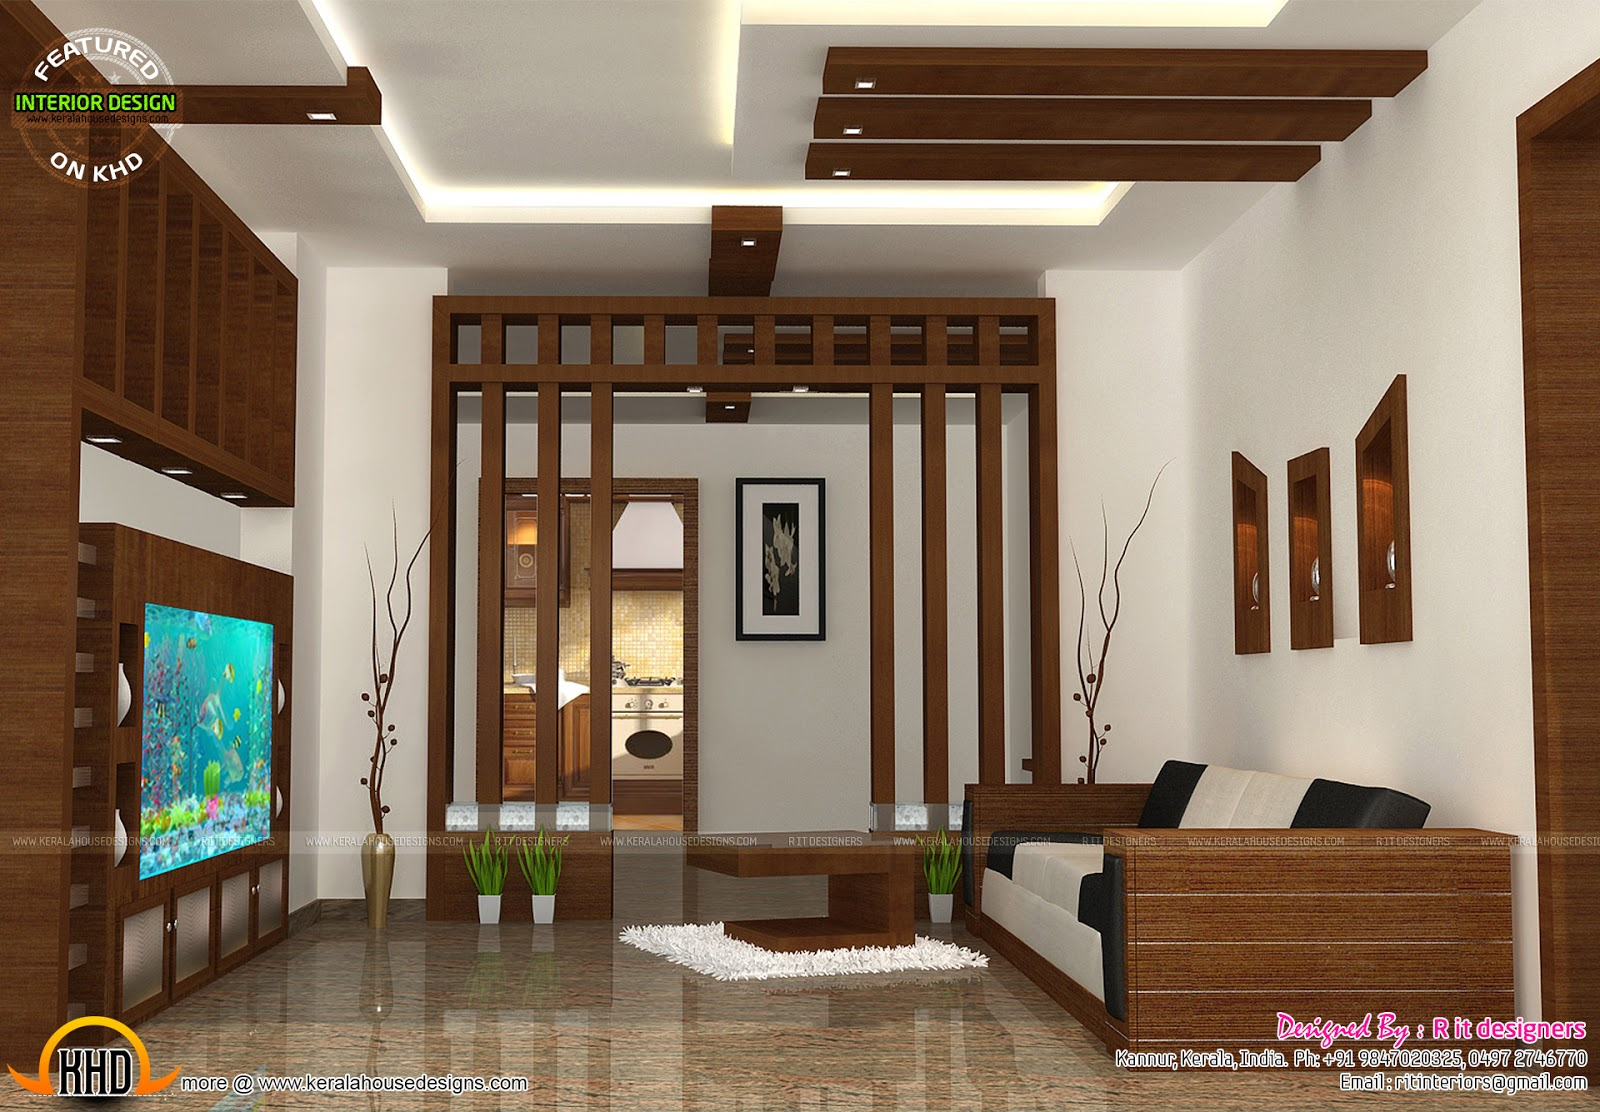 Wooden finish interiors kerala home design and floor plans for Home interior design photo gallery